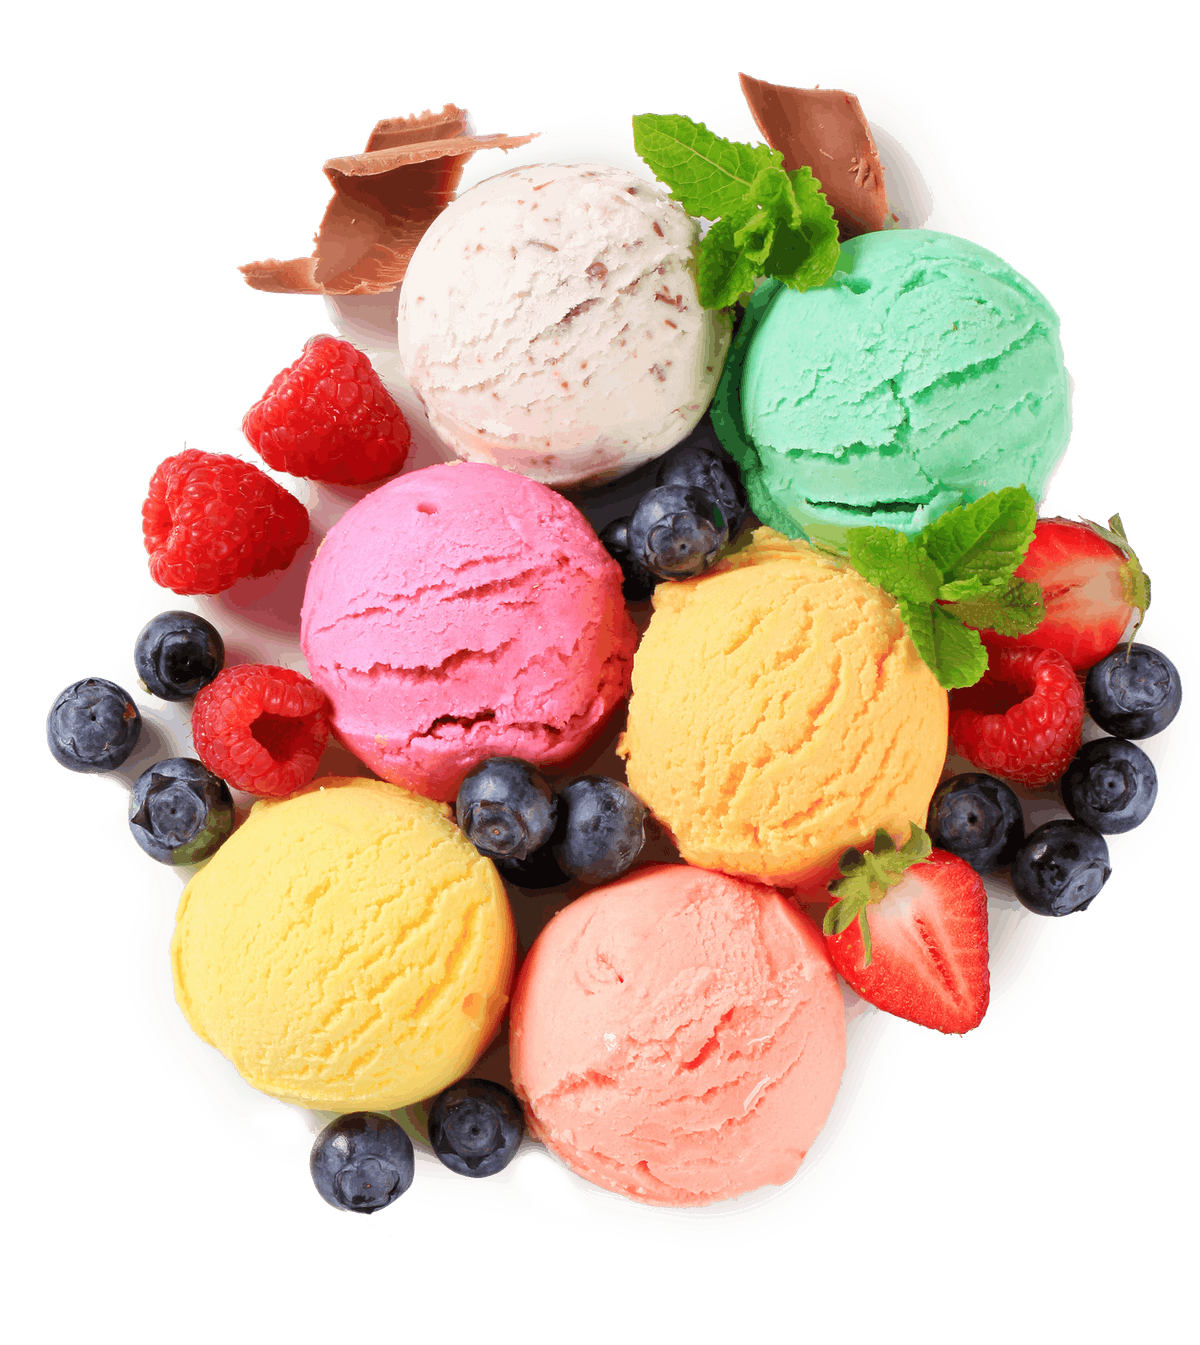 ice-cream-recipe-bg-1